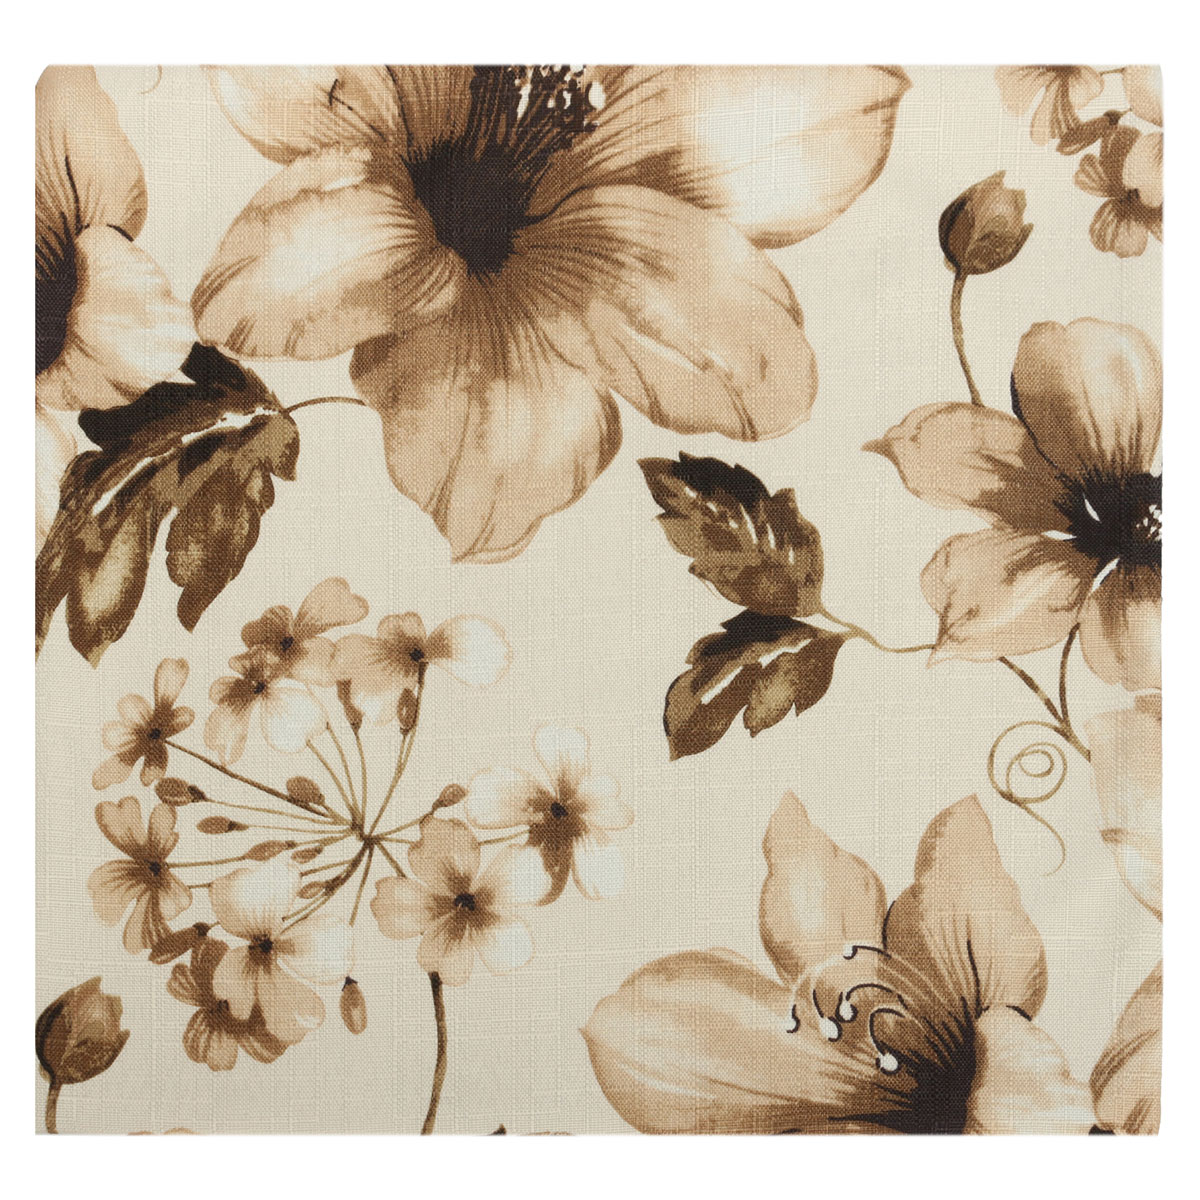 Vintage Square Flower Cotton Throw Pillow Cover Cushion